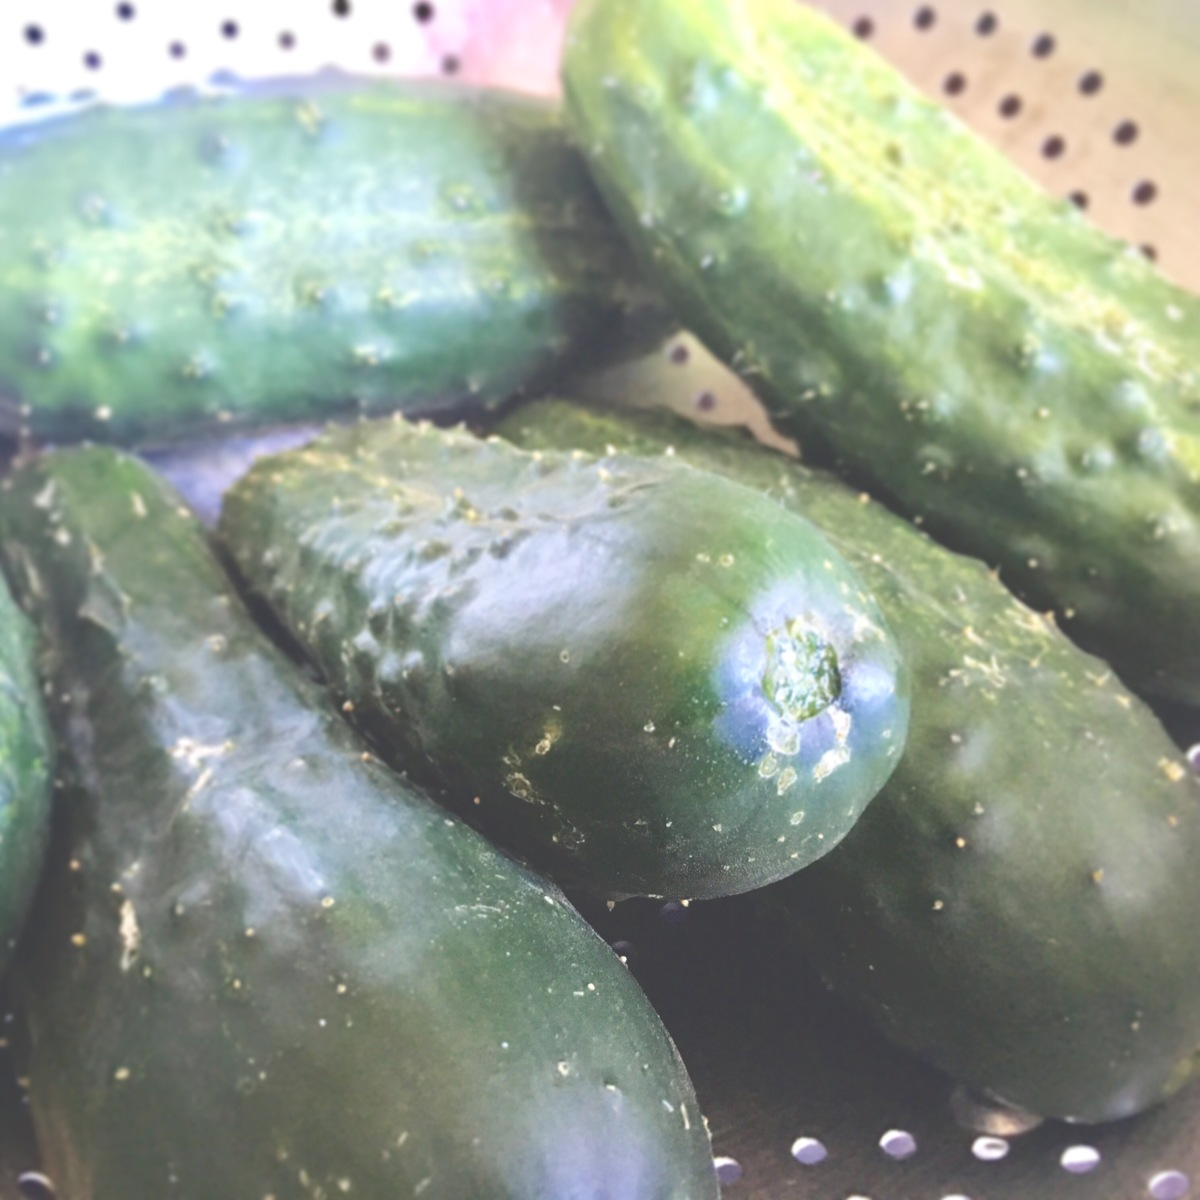 4 Recipes For Those Cucumbers In Your Garden